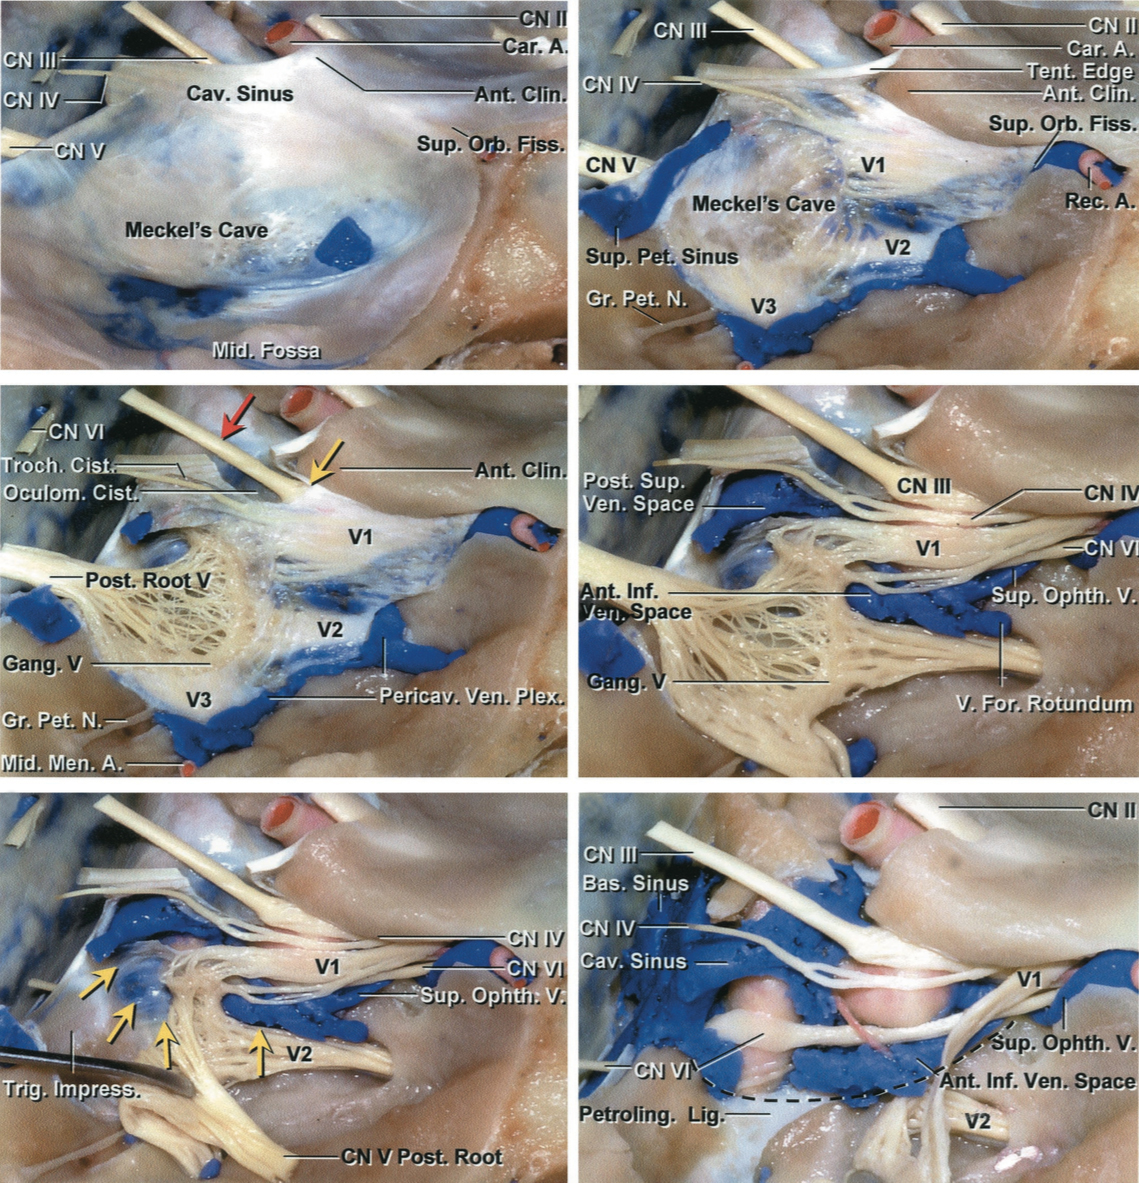 Figure 2: The relevant anatomy is demonstrated through progressive, layered, and stepwise extradural dissection of the right cavernous sinus. The lateral wall of the cavernous sinus houses CNs III, IV, V1, and V2, with CN VI passing through the sinus itself by the ICA (left upper photo). The outer layer of the temporal lobe dura has been peeled away from the lateral wall of the cavernous sinus, exposing CNs III and IVentering the roof of the cavernous sinus and passing forward through the superior orbital fissure (right upper photo). CN III enters a short cistern in the sinus roof (red arrow) and does not become incorporated into the lateral wall until it reaches the lower margin of the anterior clinoid process (yellow arrow, left middle image). The remaining dura covering the lateral wall has also been removed (right middle image). The posterior trigeminal root has been reflected forward to expose the posterior part of the lower margin of the cavernous sinus (yellow arrow) in the area medial to the trigeminal impression on the petrous apex (left lower photo). The trigeminal nerve and its three divisions have been reflected forward to expose the venous spaces of the cavernous sinus (right lower image). (Images courtesy of AL Rhoton, Jr.)